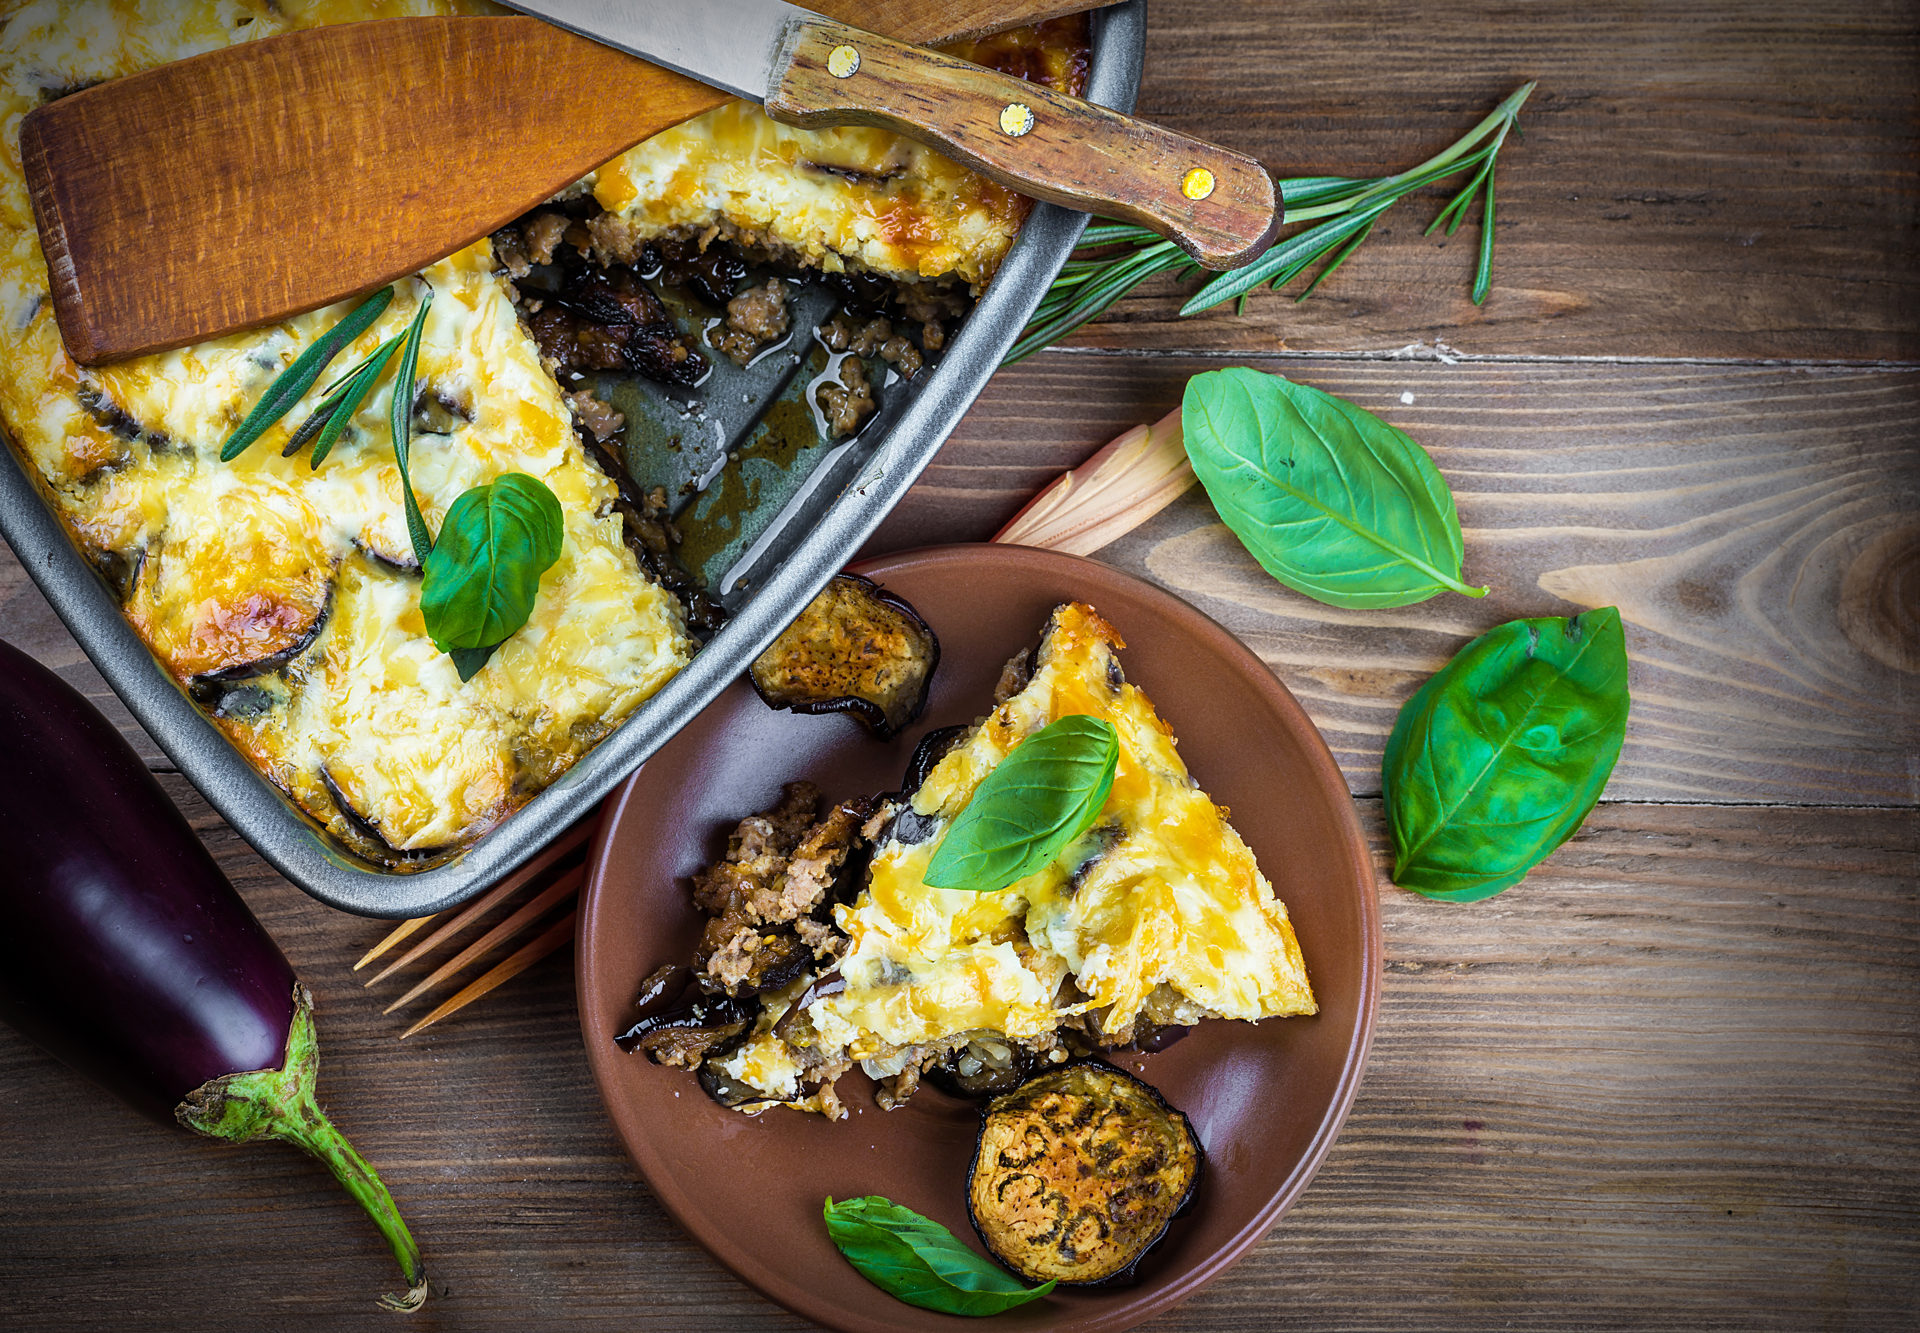 Greek Moussaka of eggplant and minced meat